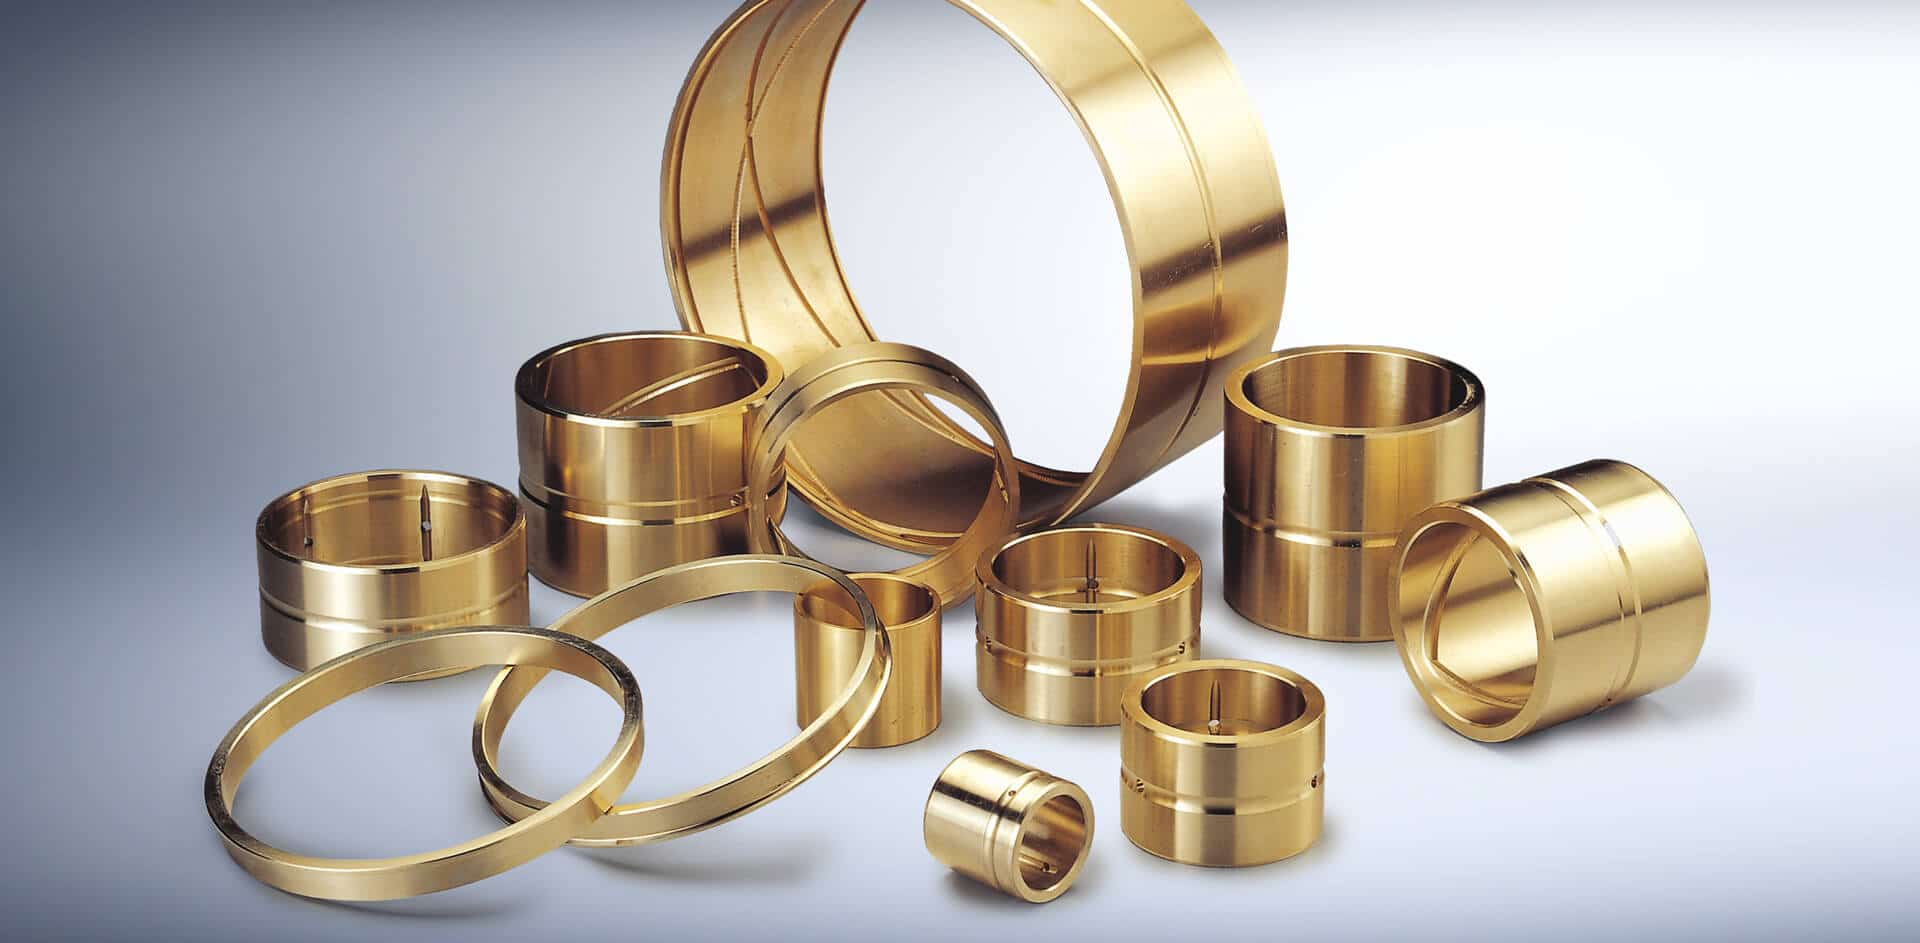 cast-bronze-bearings.